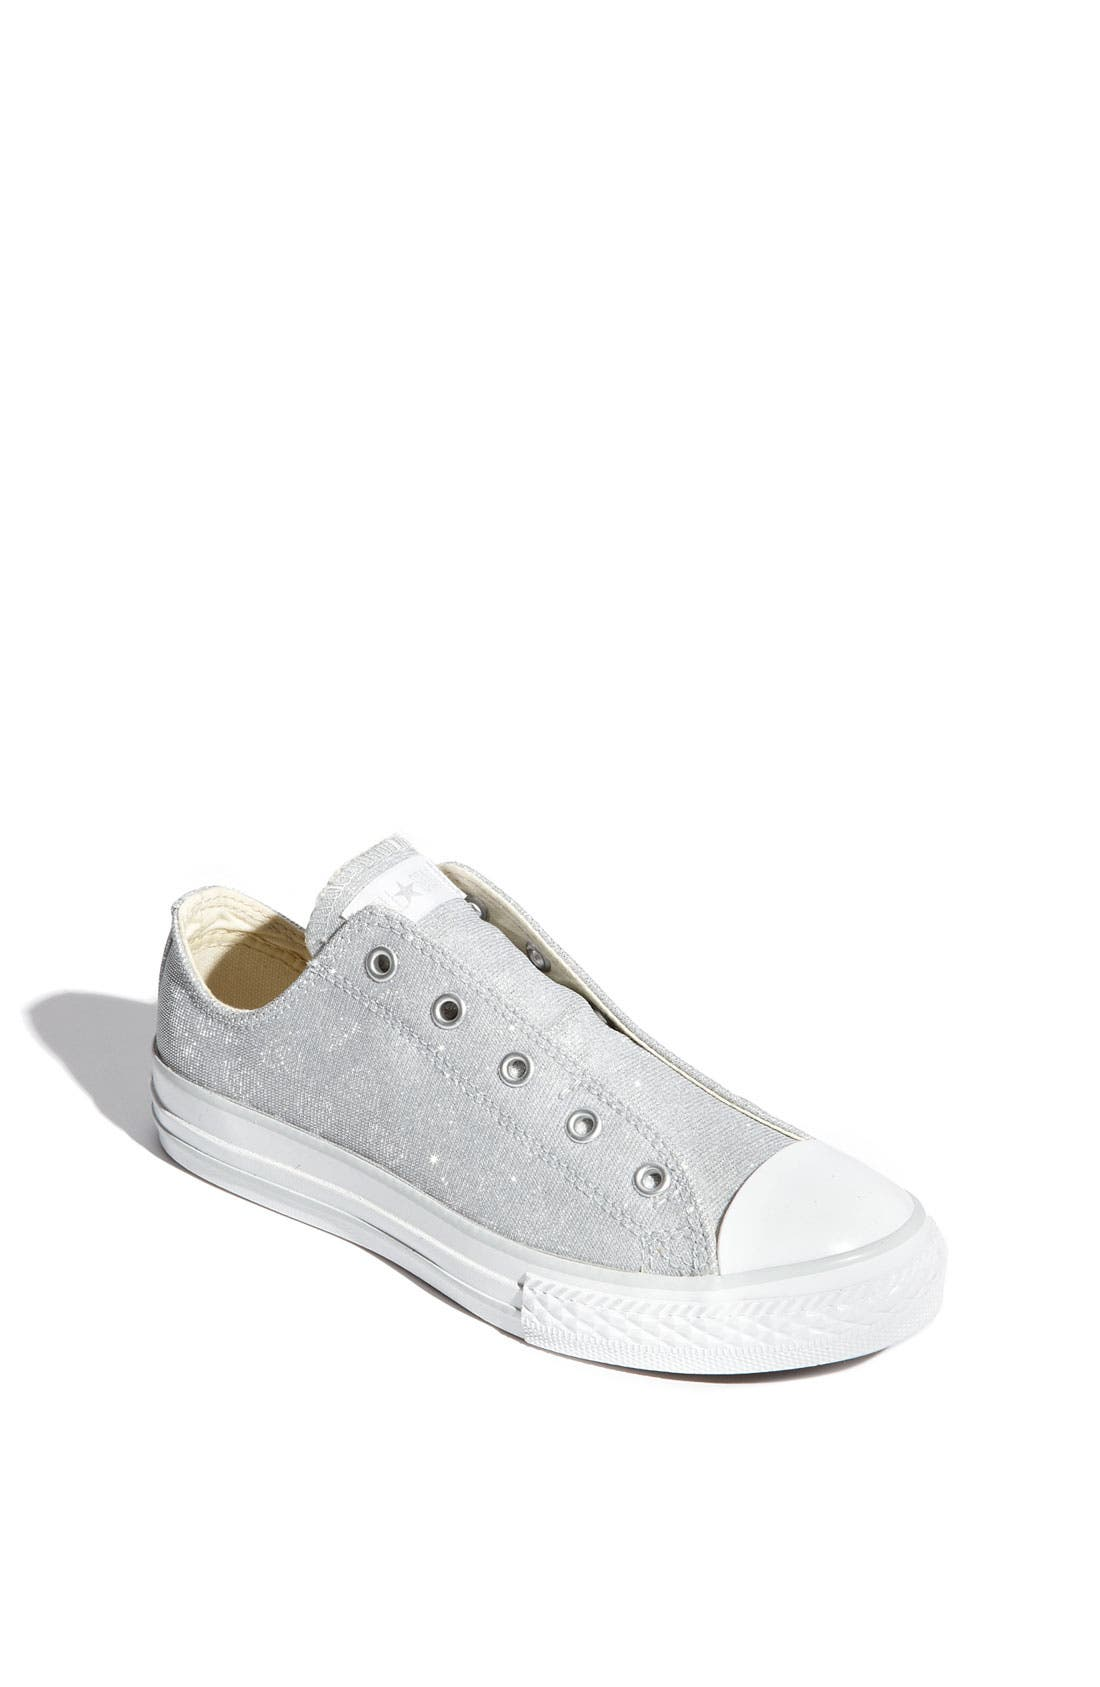 CONVERSE,                             Chuck Taylor<sup>®</sup> 'Holographic Hearts' Slip-On Sneaker,                             Main thumbnail 1, color,                             040